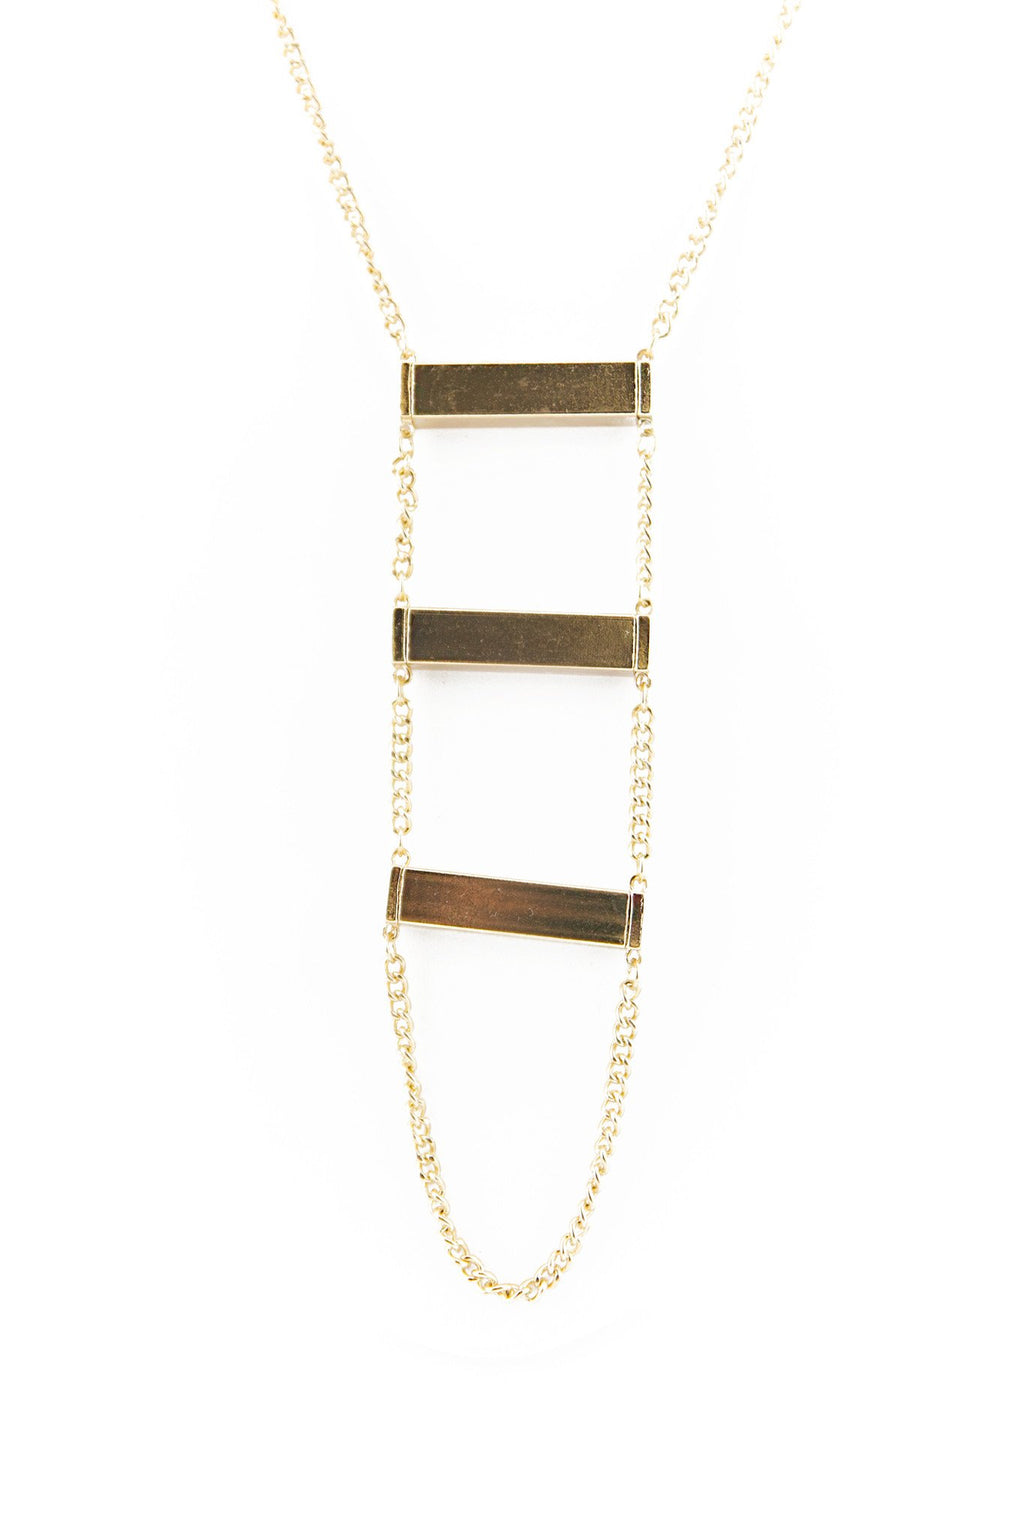 LONG TRIPLE BLOCK PENDANT NECKLACE - Haute & Rebellious